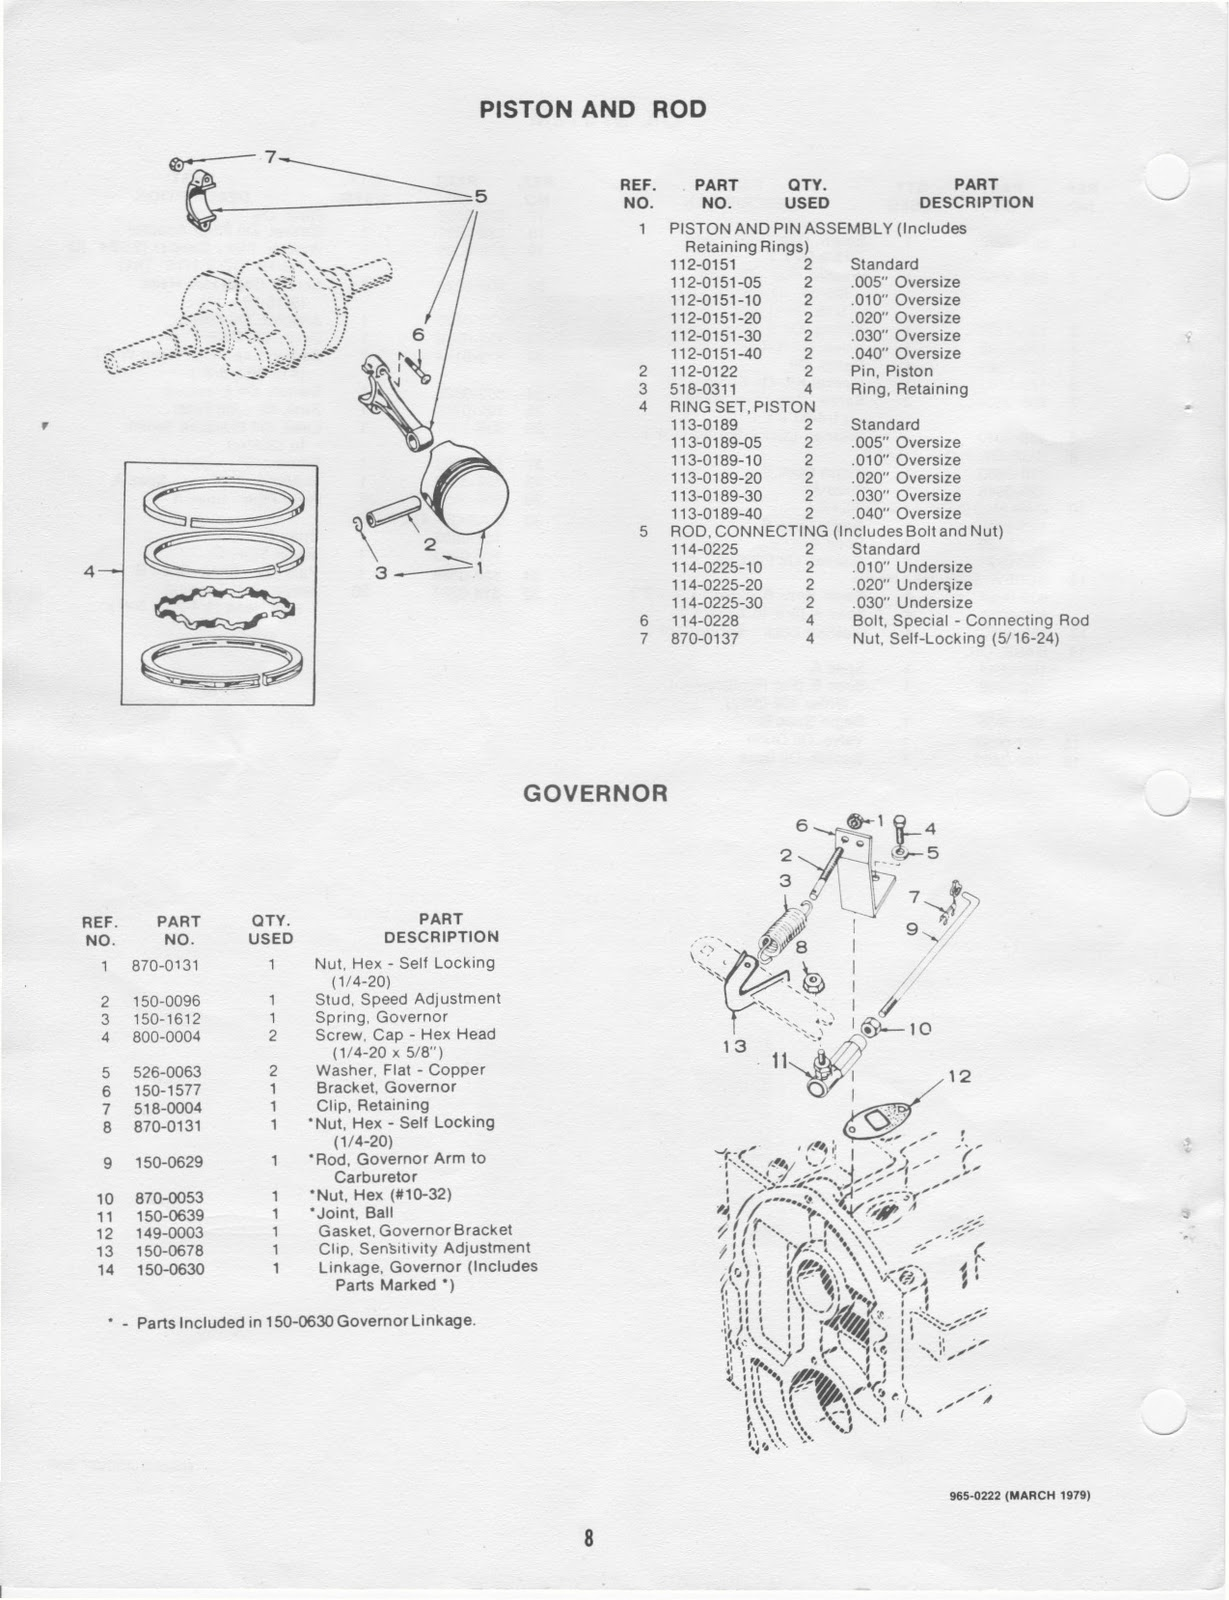 kw gas 00 pumps html after replacing spark plugs cleaning carburetor bit starts idles i have a 6 5 mce onan marine generator  [ 1229 x 1600 Pixel ]